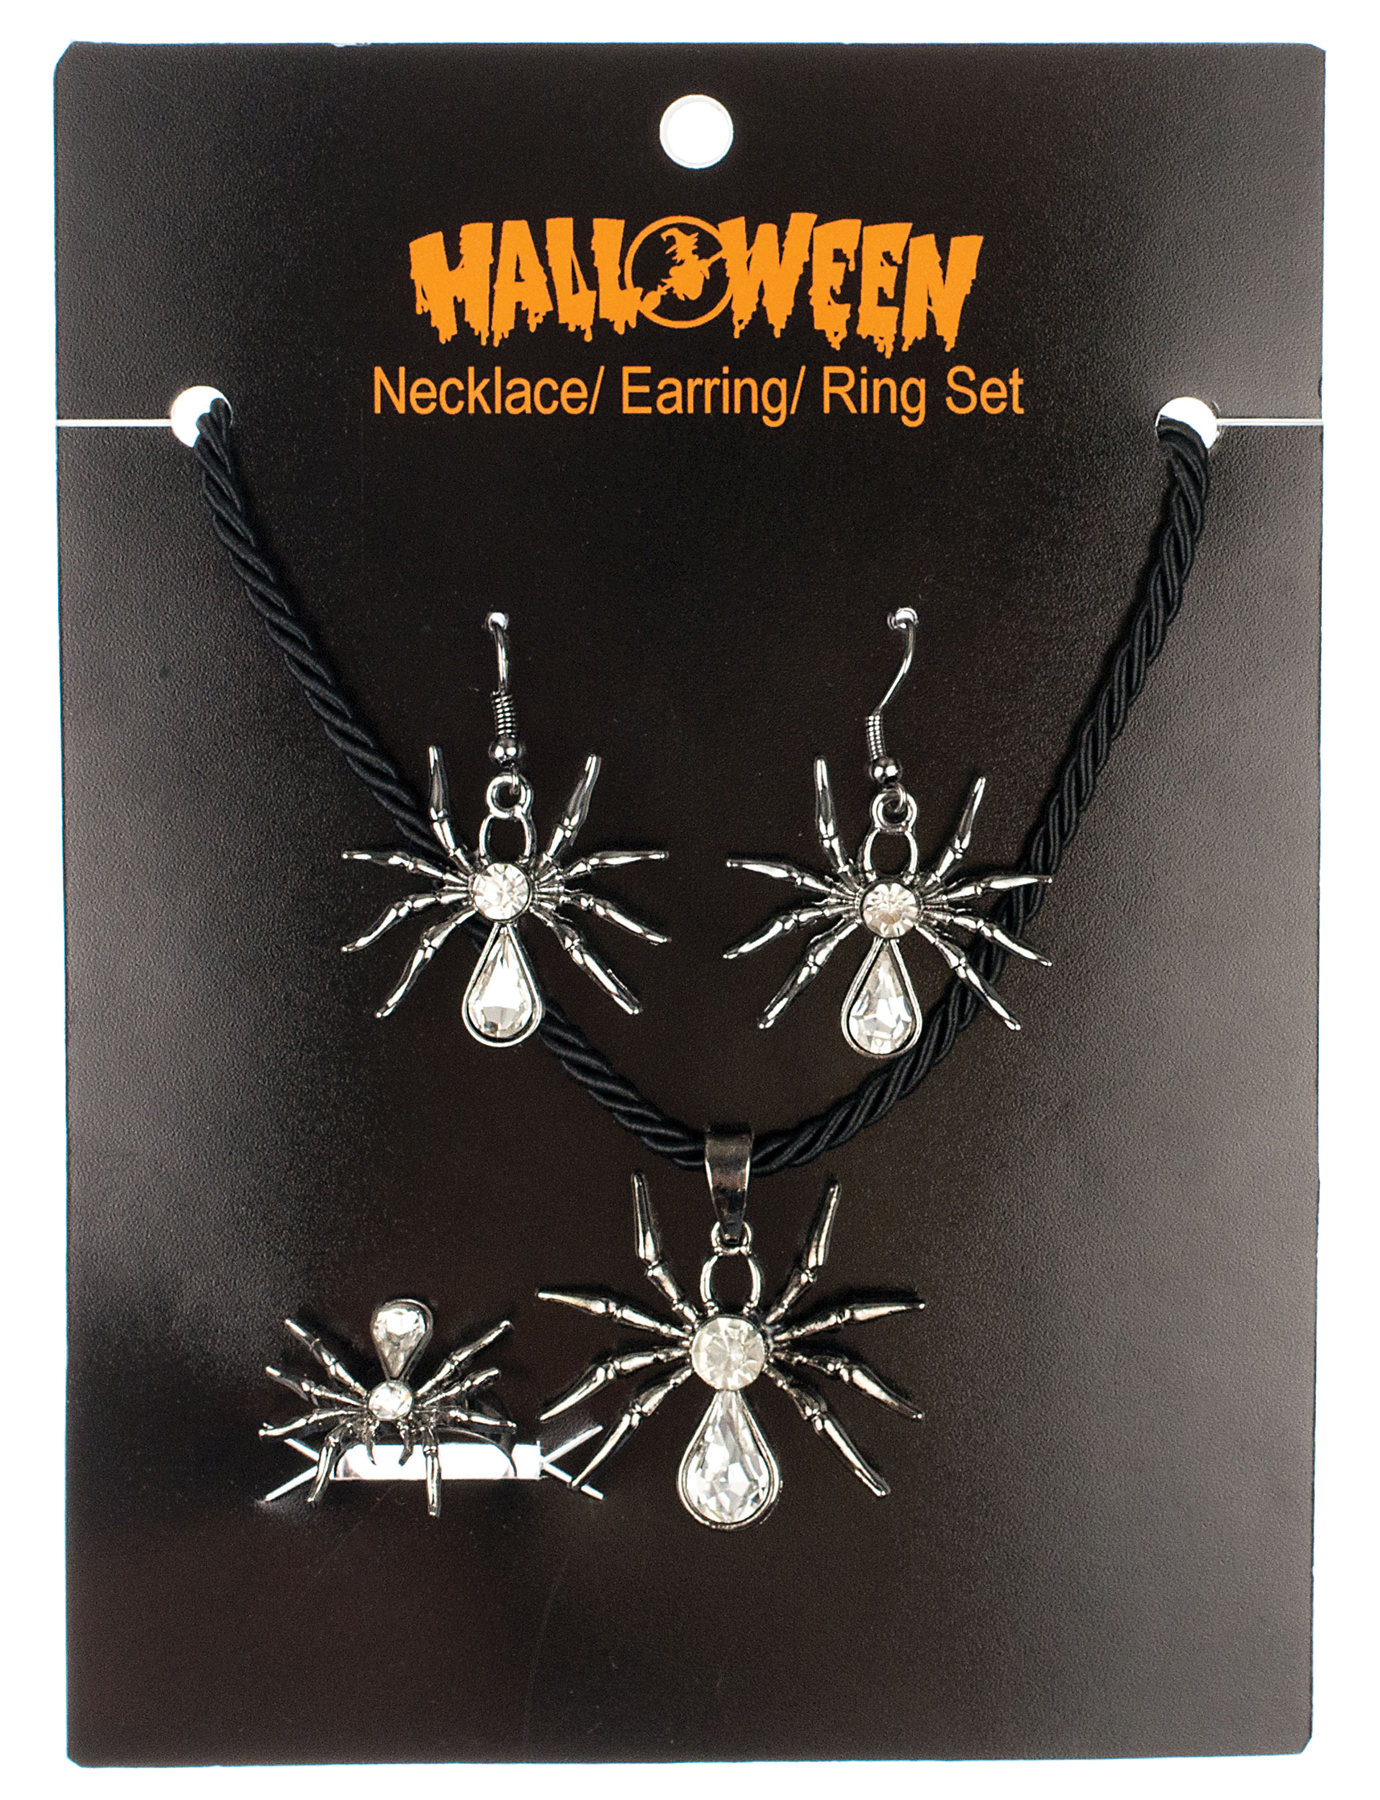 Featured Image for Spider Necklace, Ring & Earring Set